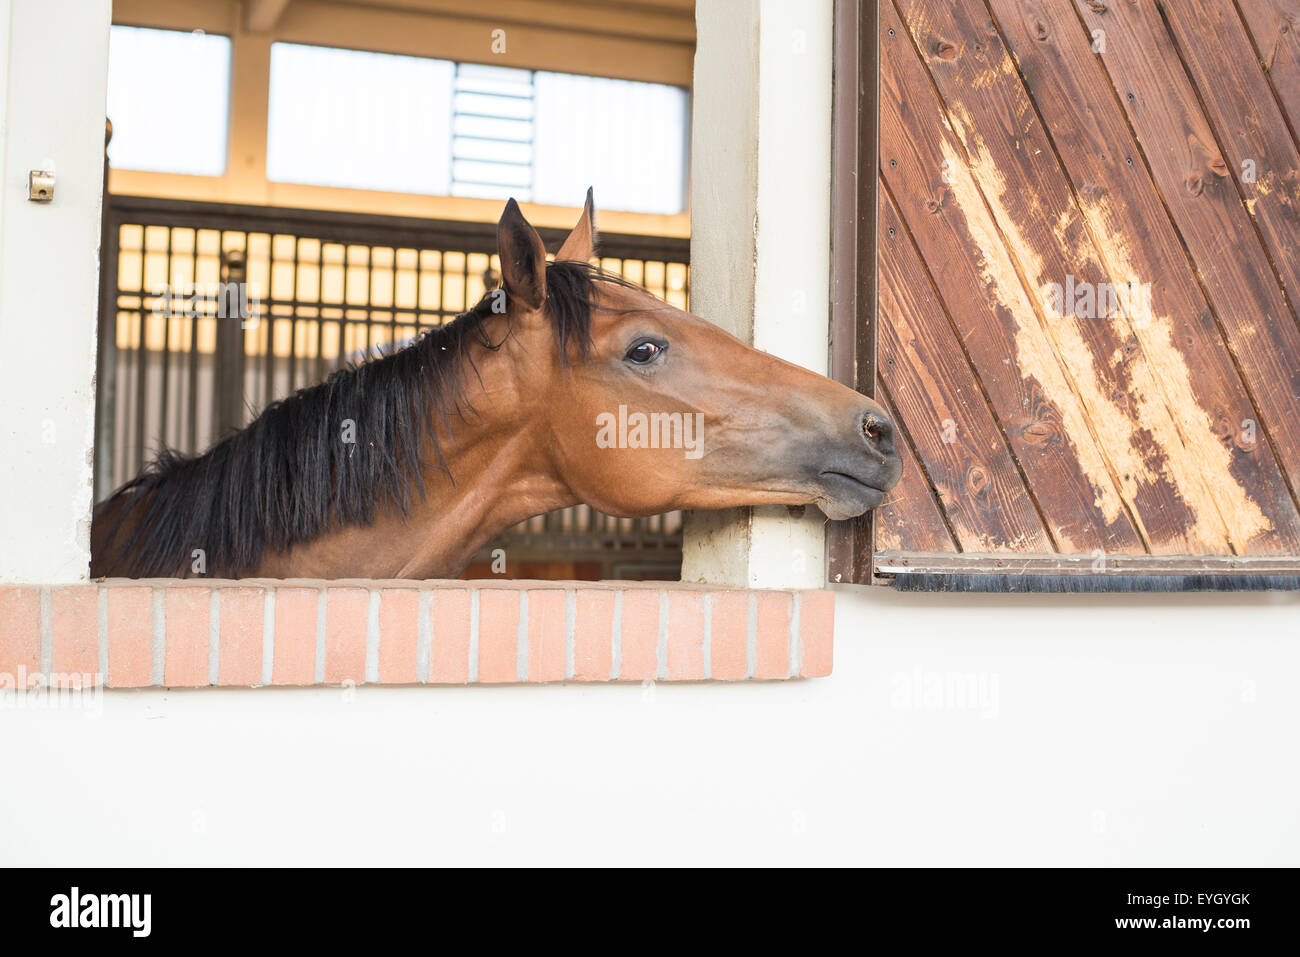 Head of horse in window of stable box on horse farm - Stock Image